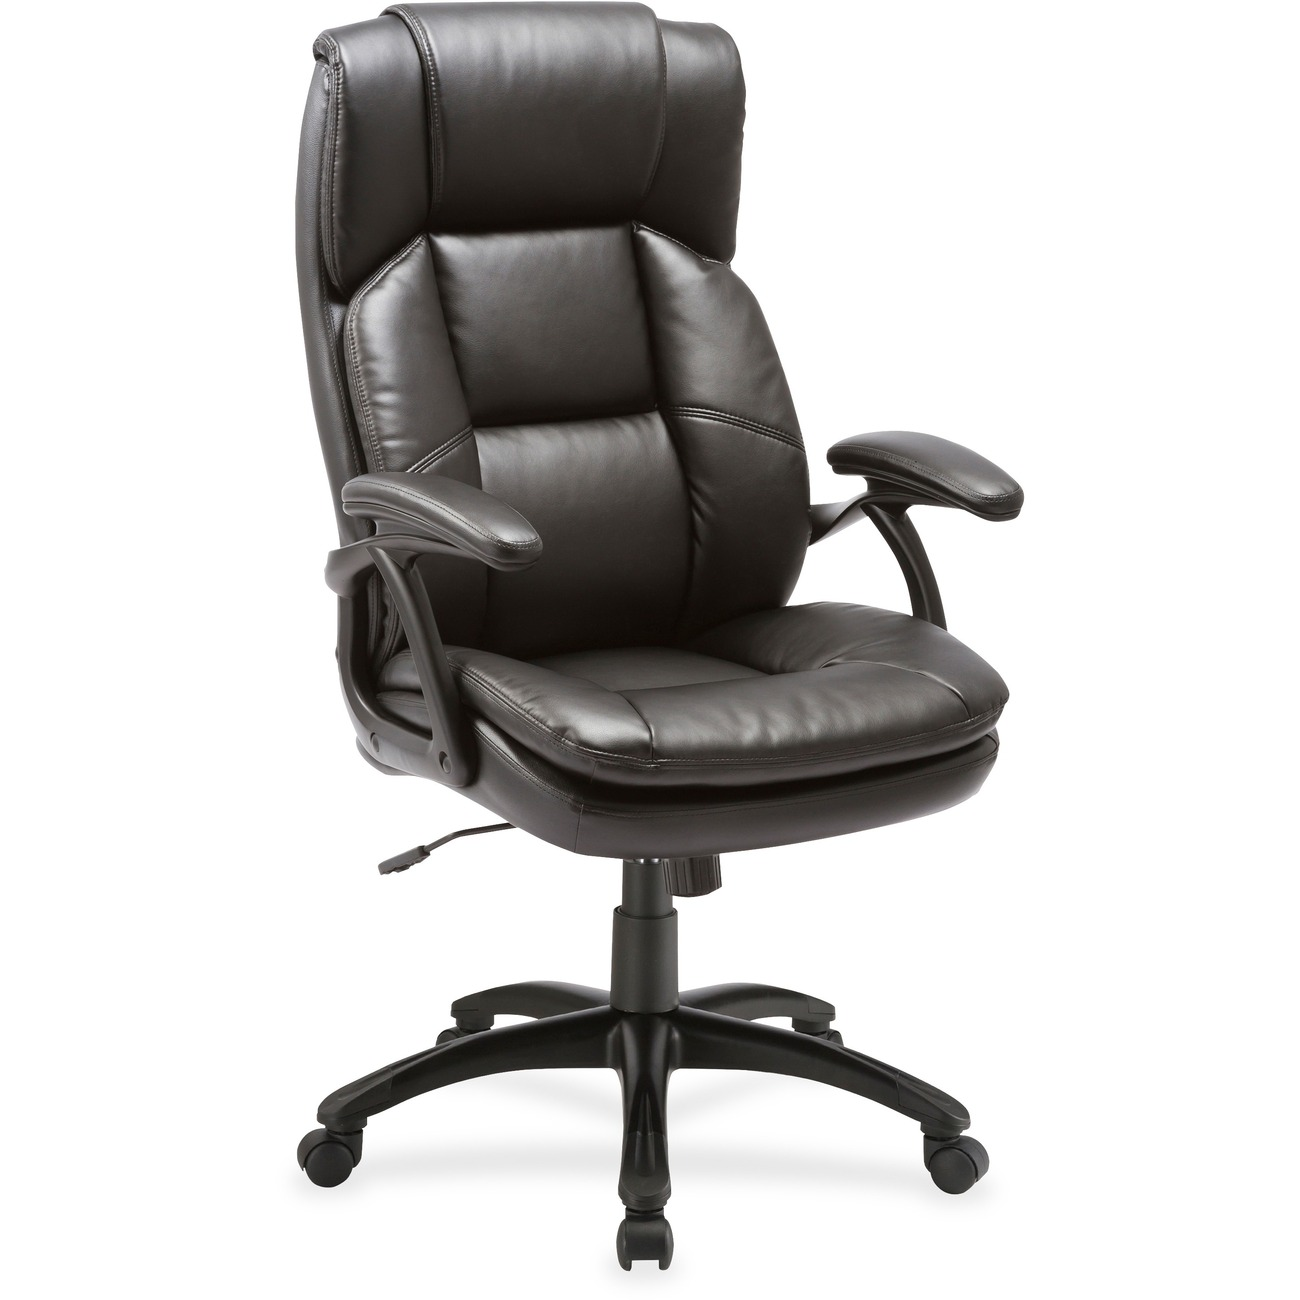 executive chair accessories portable chairs for golf tournaments west coast office supplies furniture